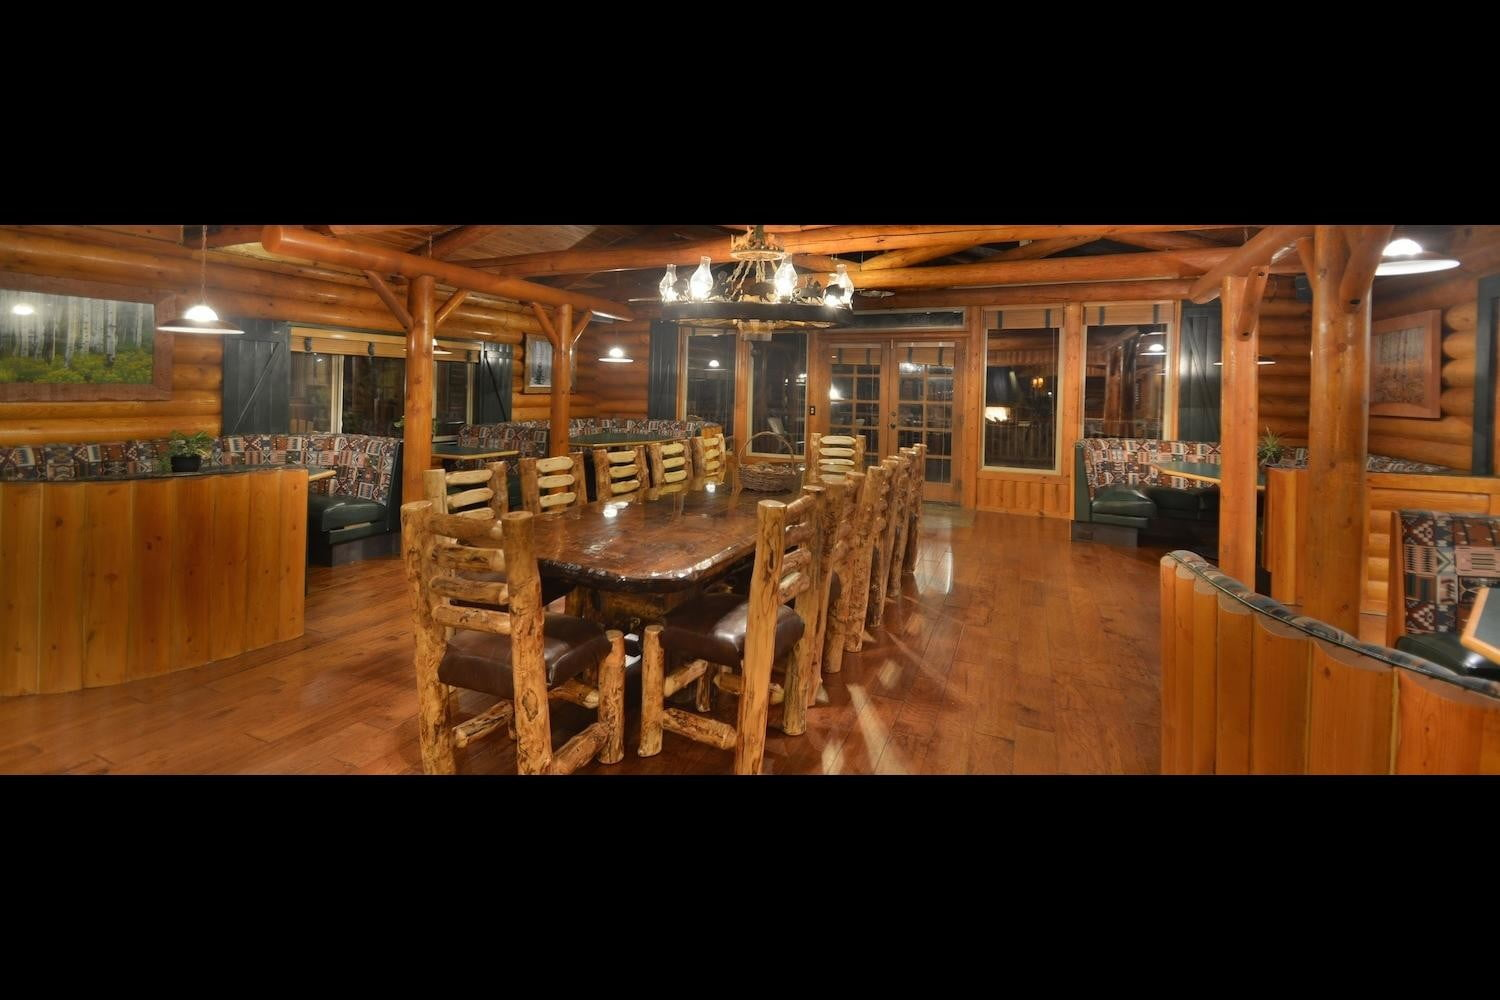 retreat from society and relax in these idyllic cabins around the world timber moose lodge 5